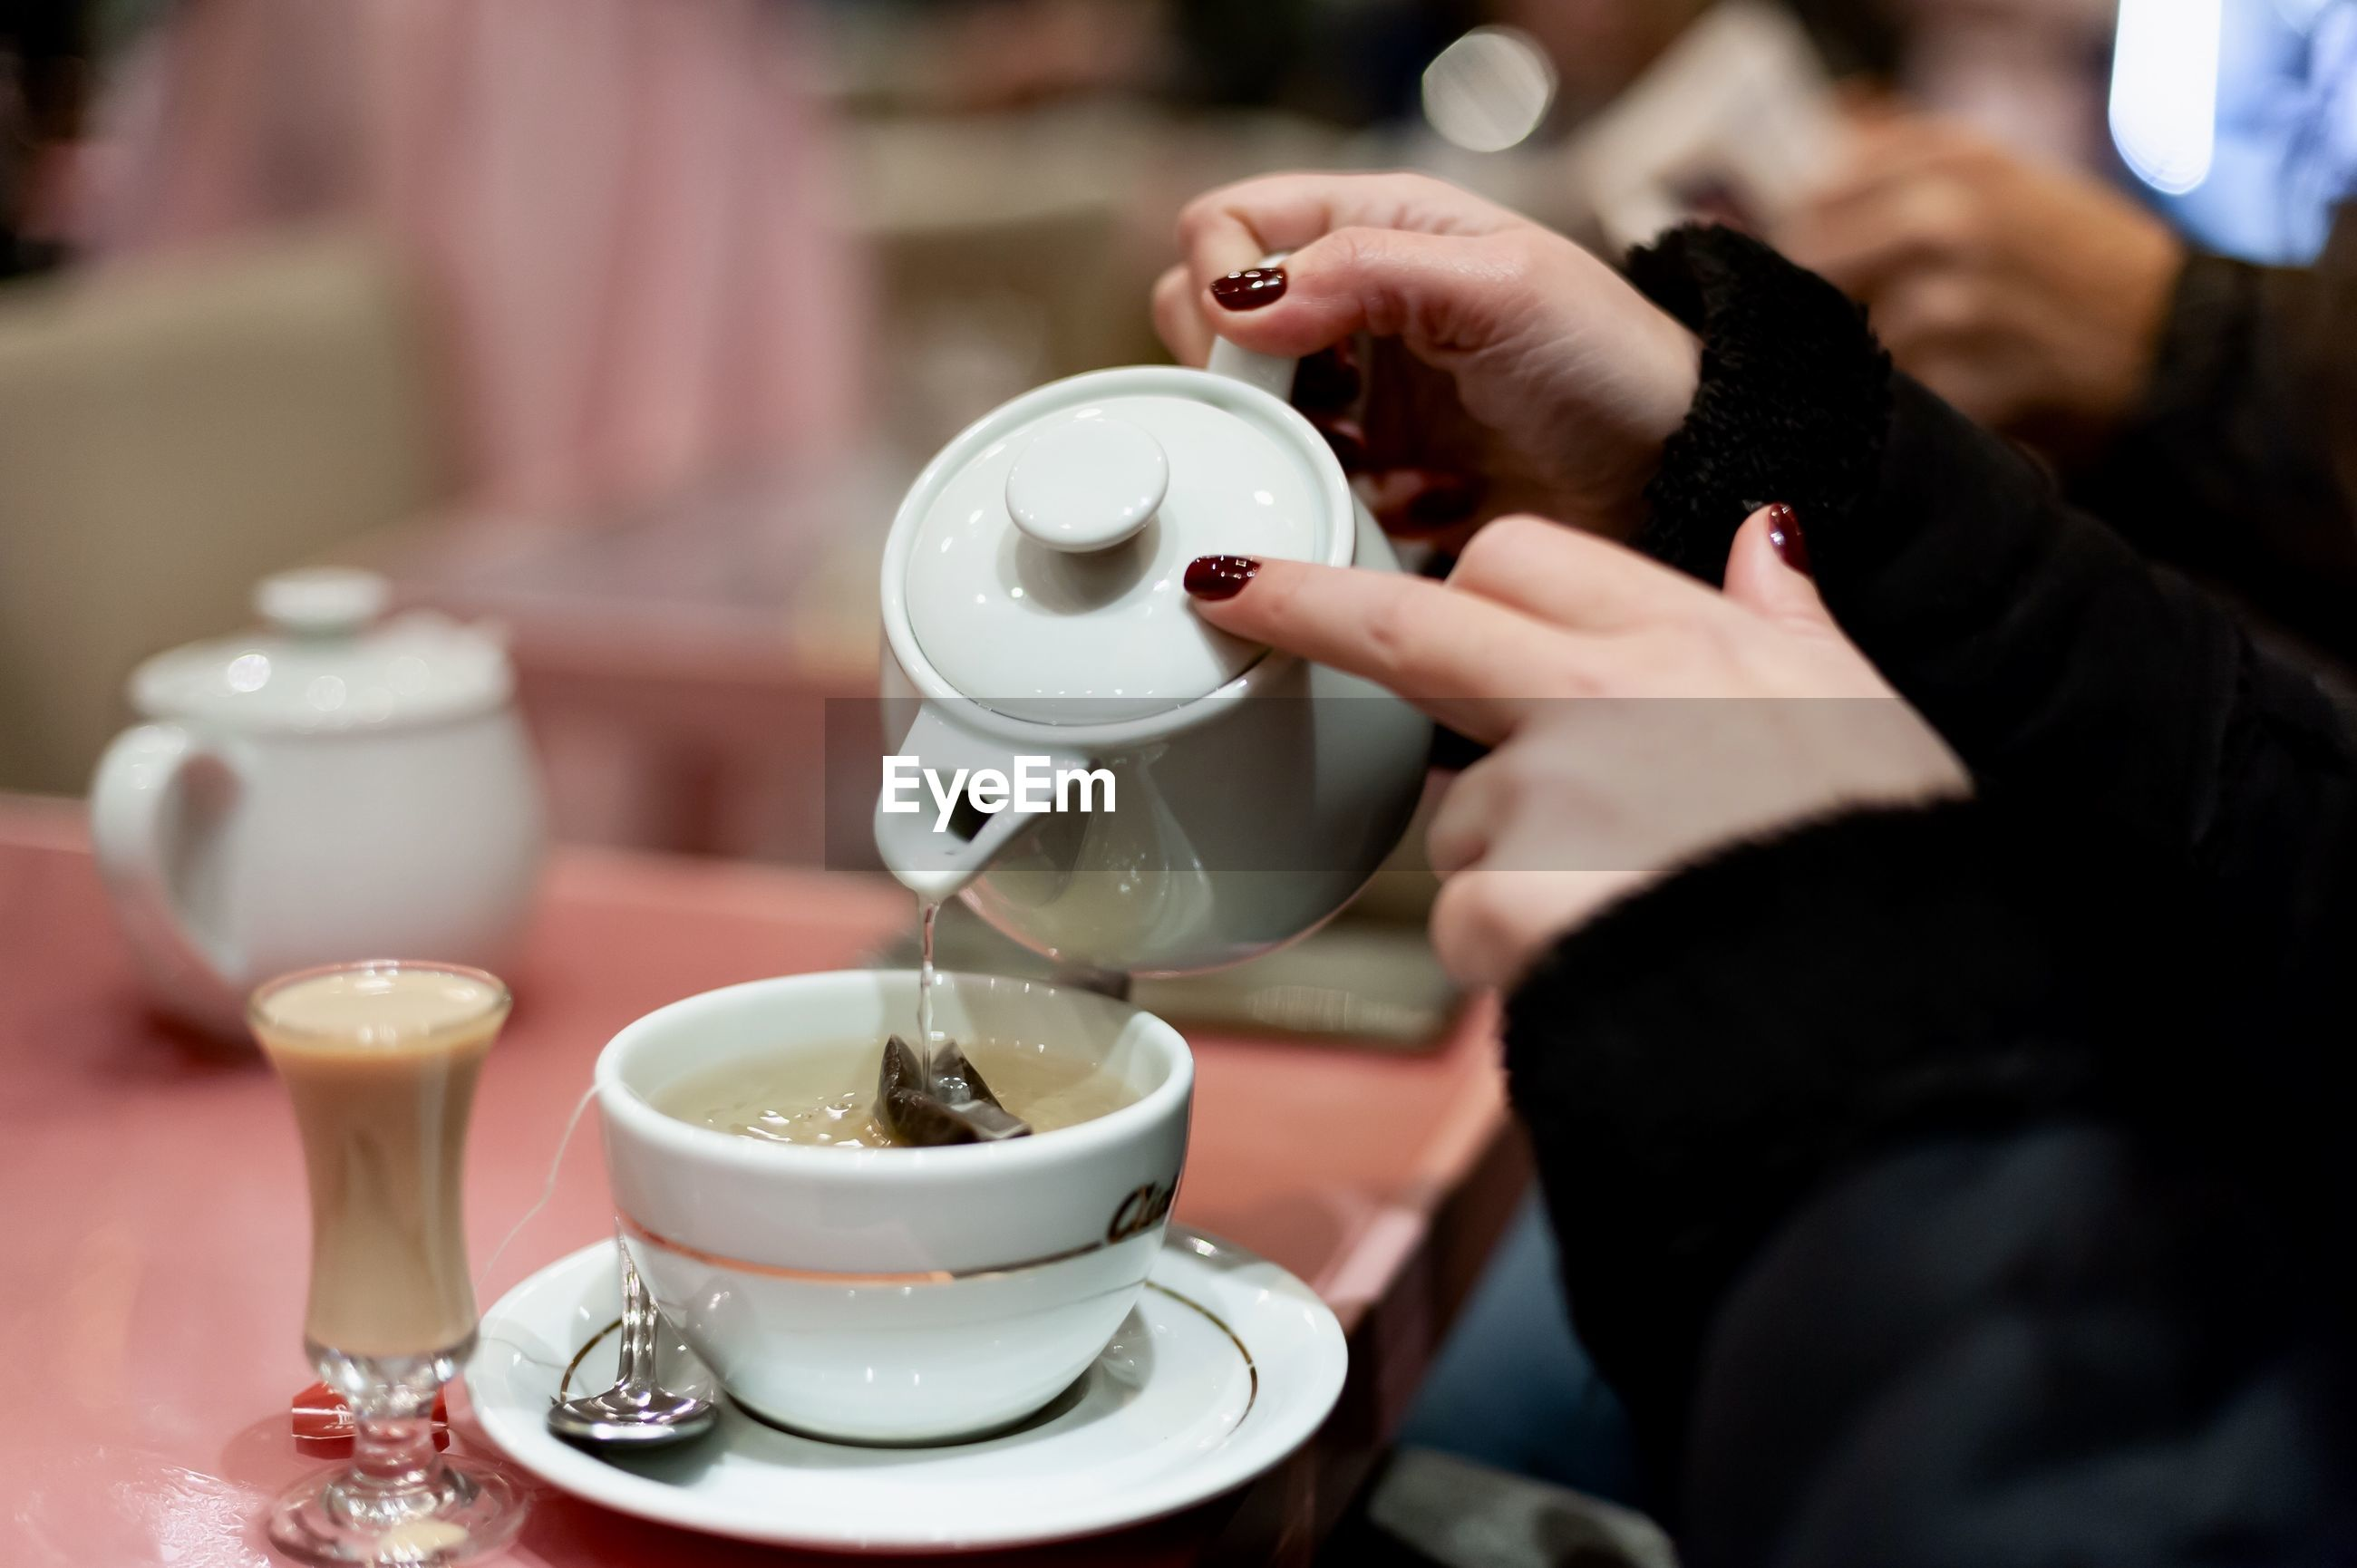 MIDSECTION OF MAN HOLDING COFFEE CUP AND TABLE